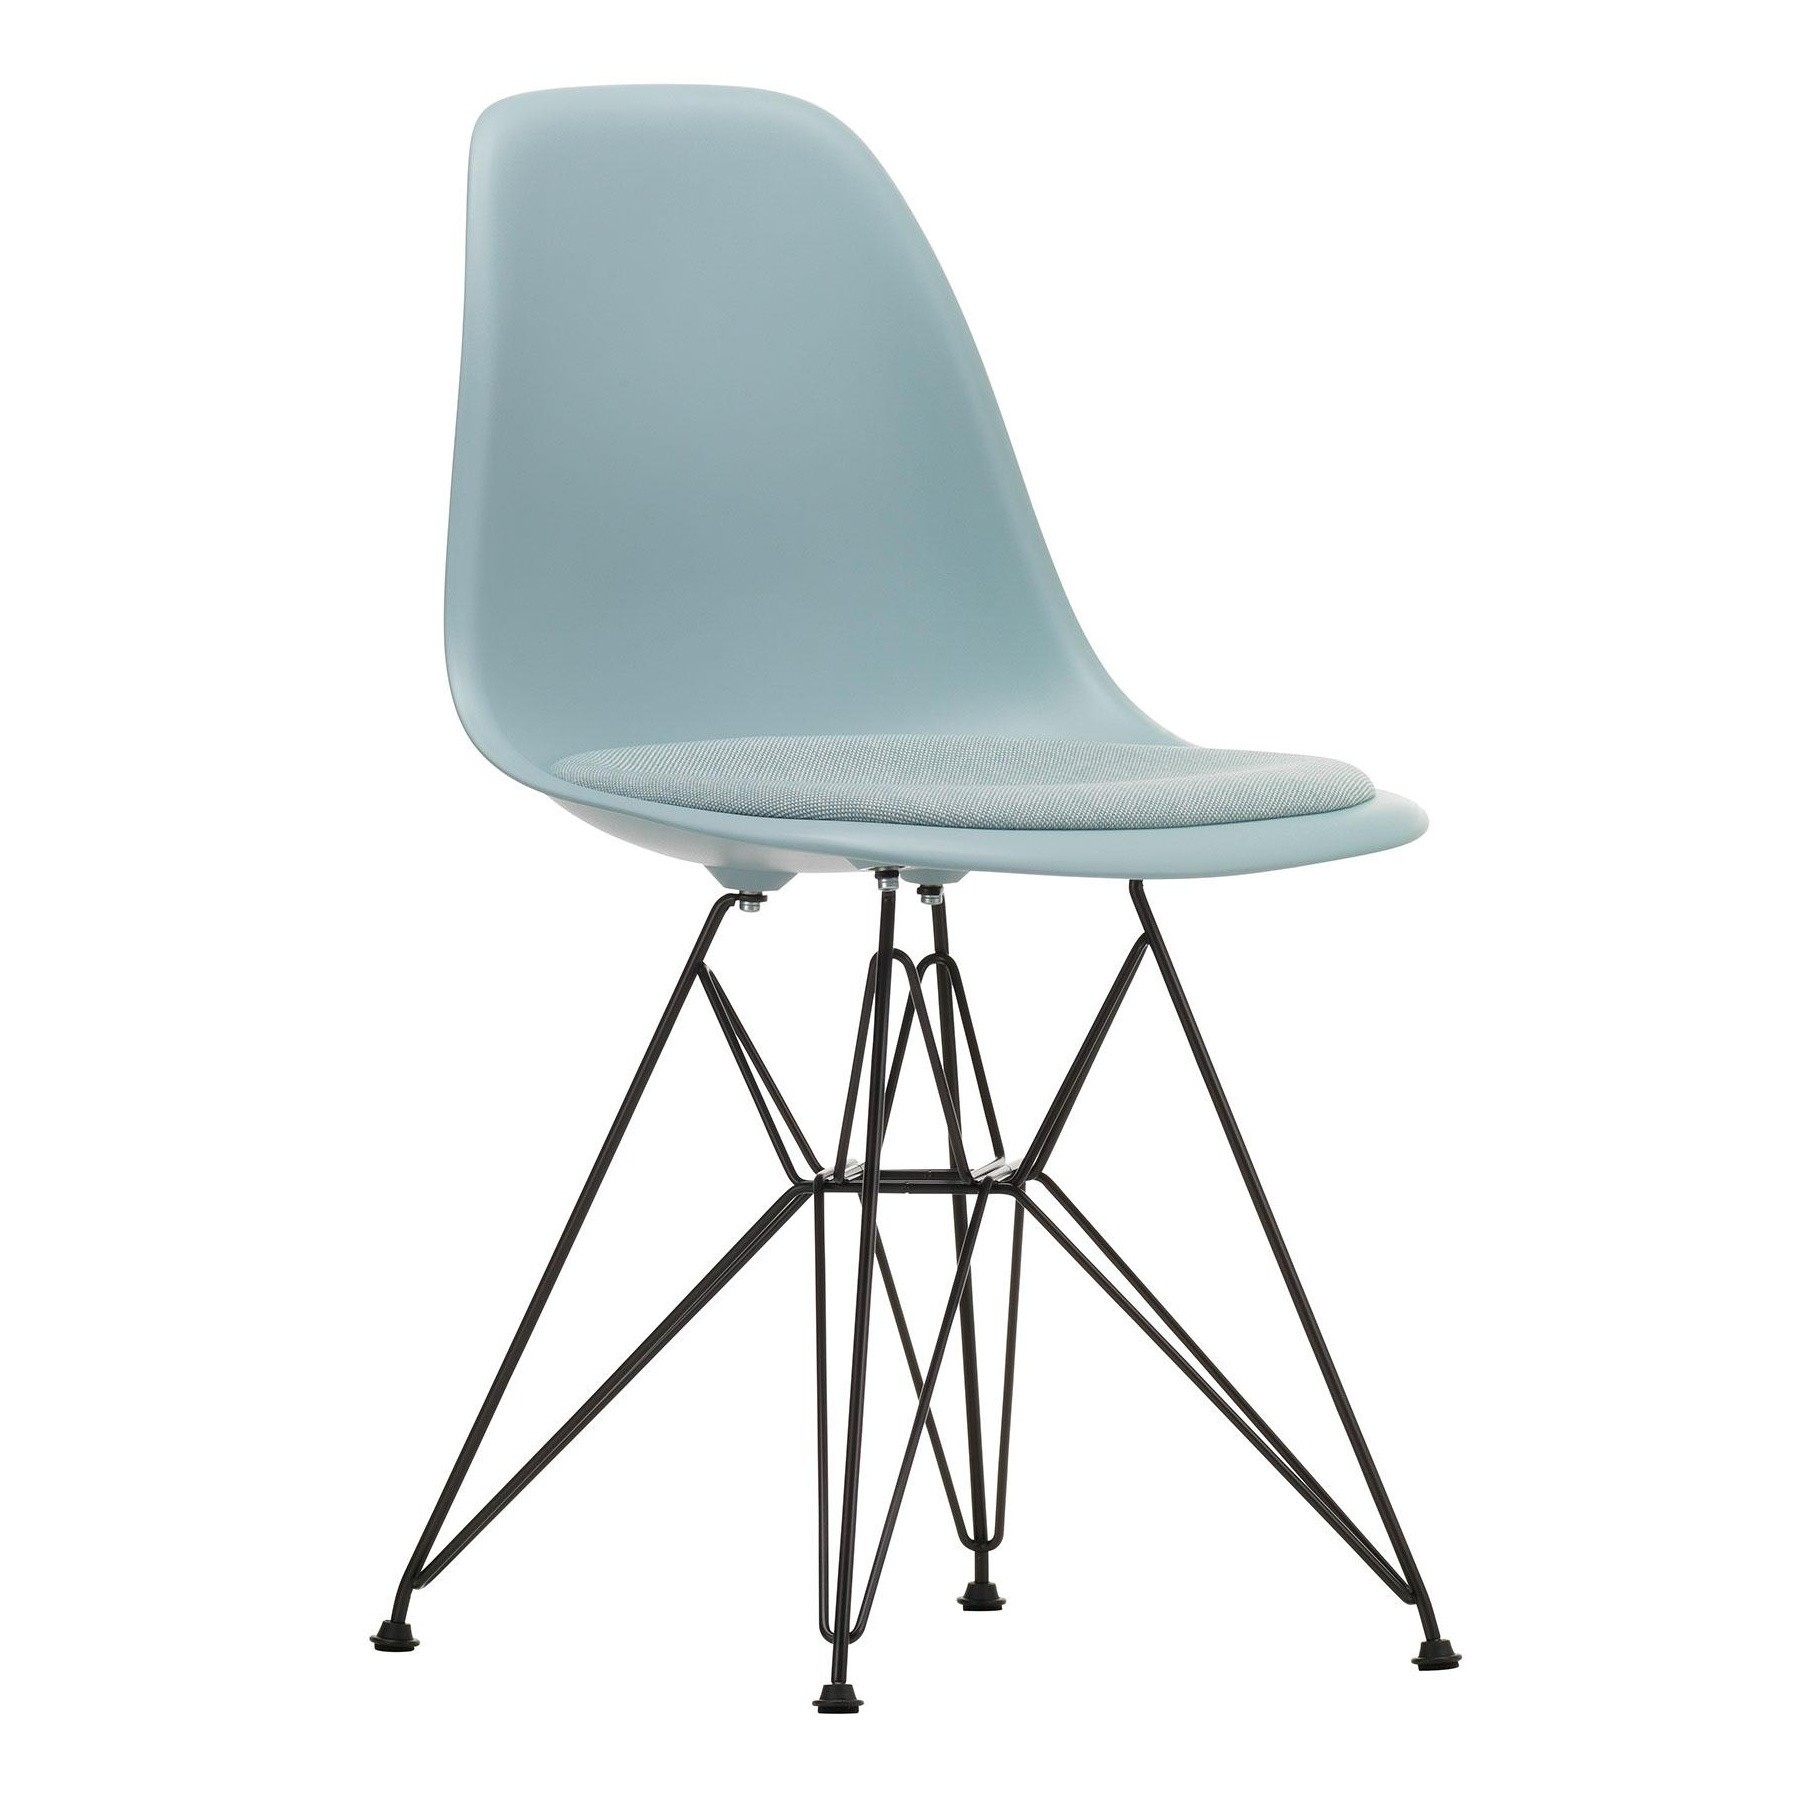 vitra eames plastic side chair dsr upholsterd ambientedirect